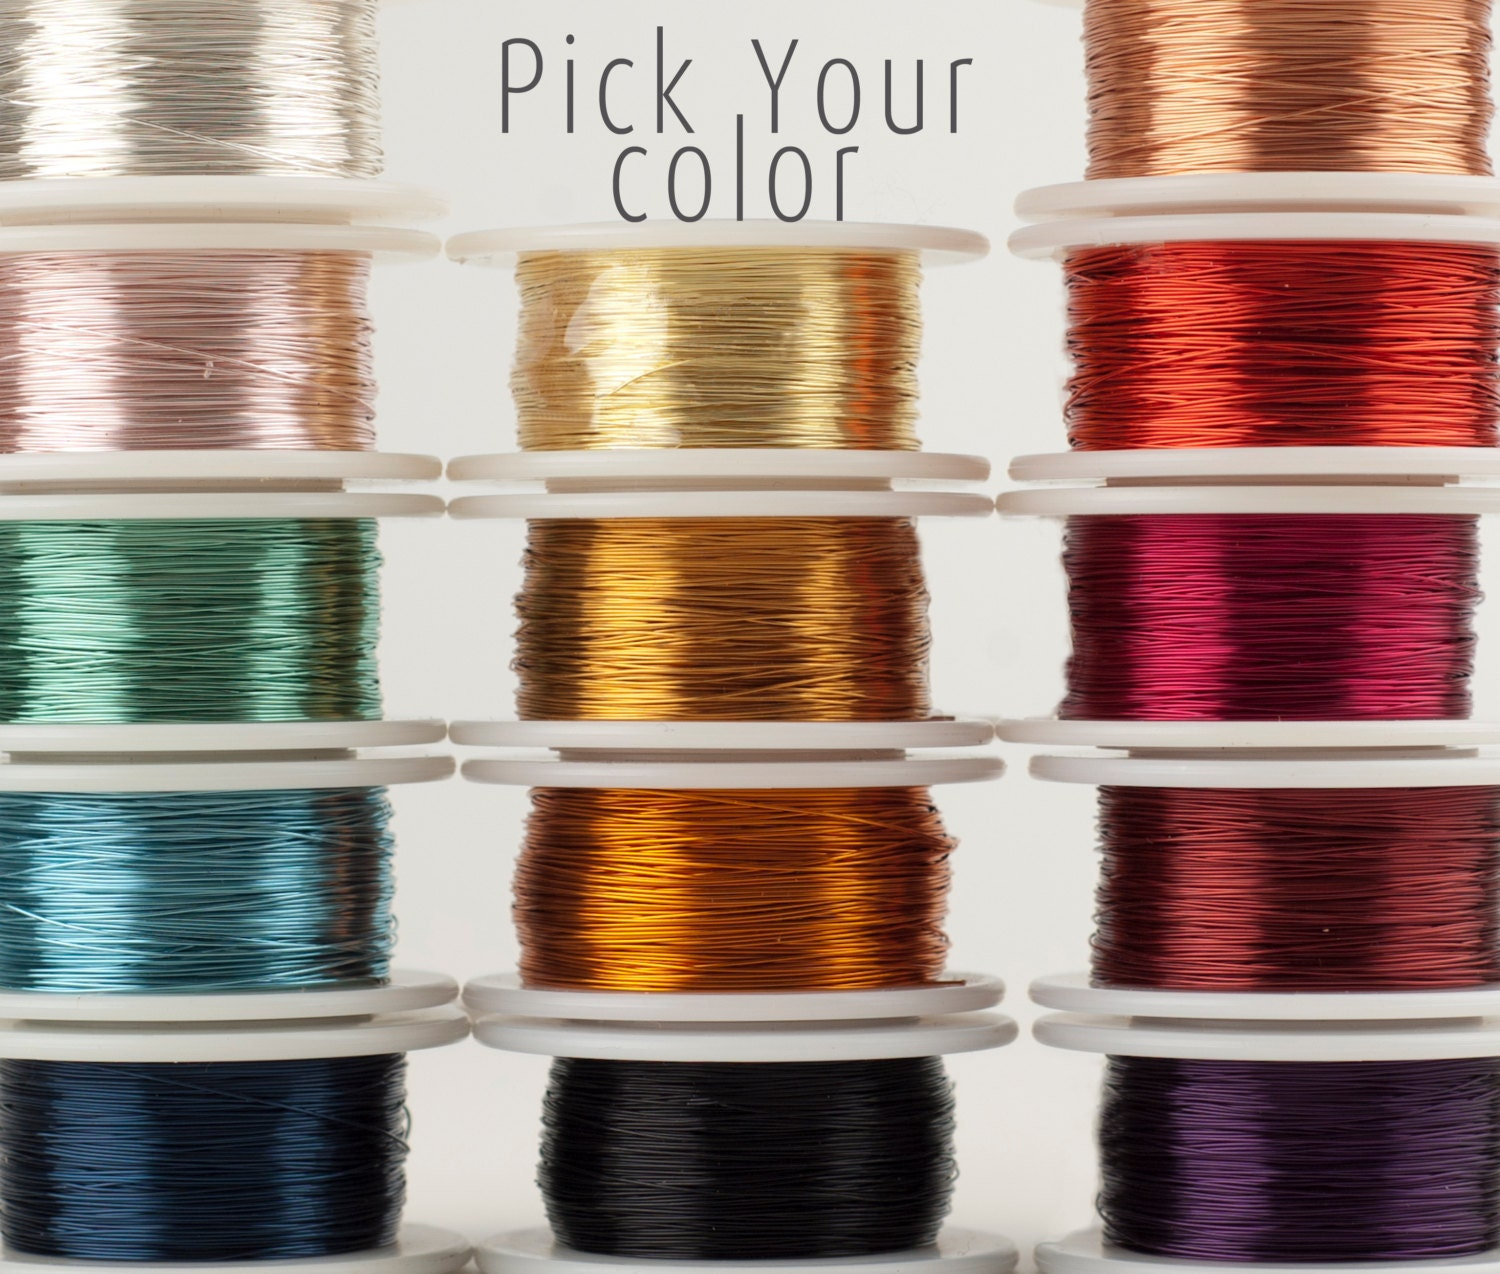 Craft Wire Pick Your Color Wire Crochet Supply 28 Gauge Etsy